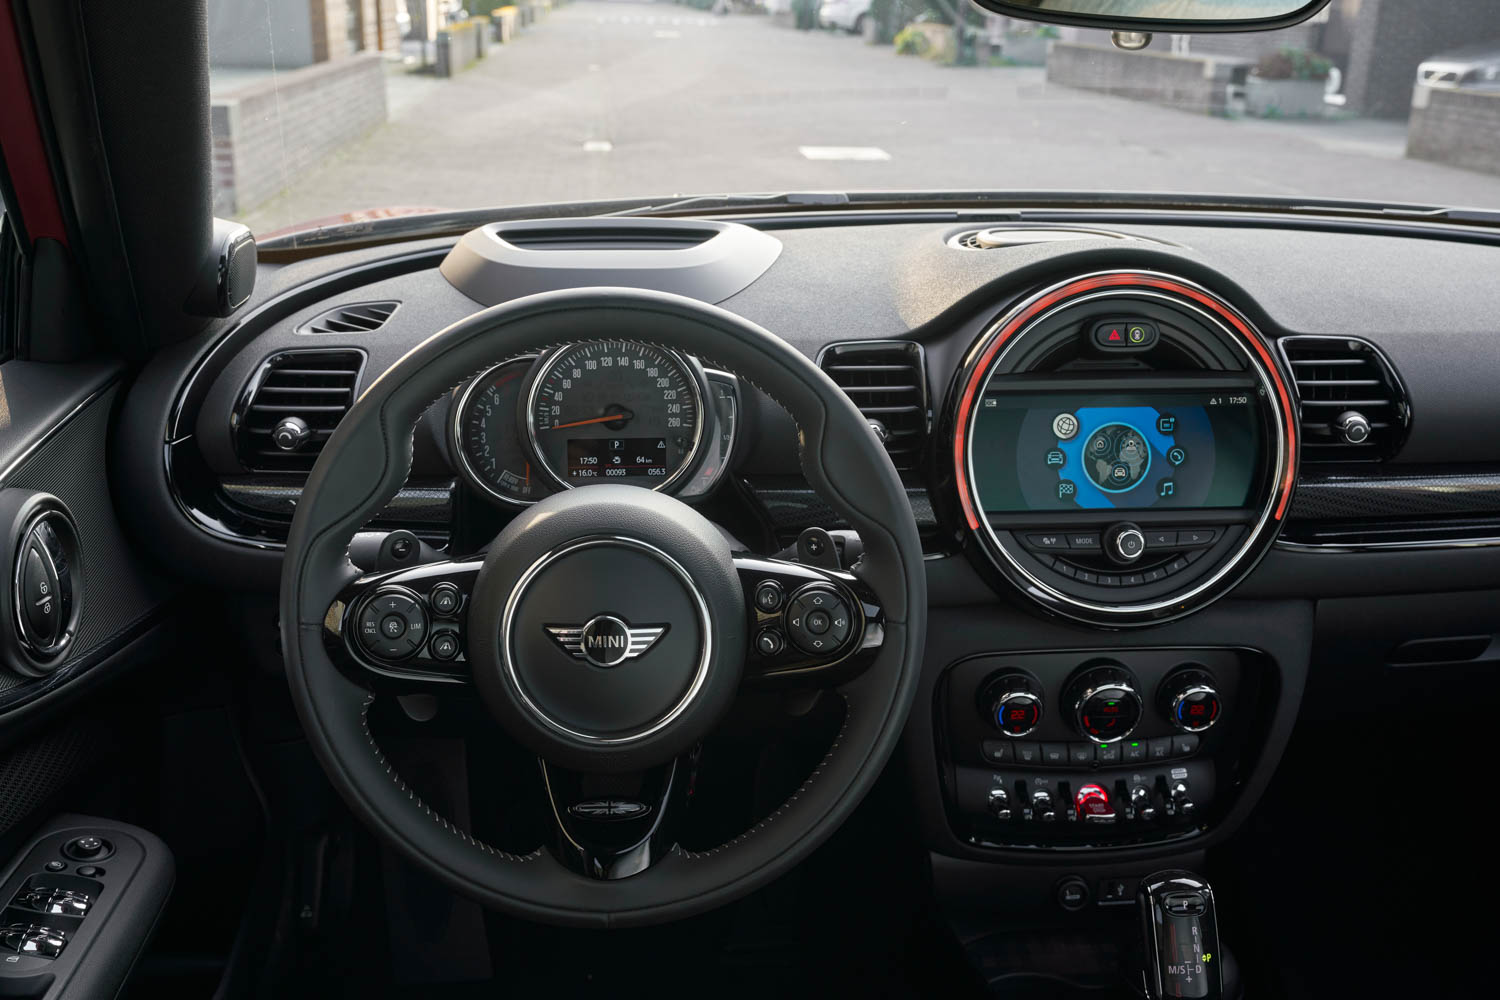 2019 MINI Clubman steering wheel detail